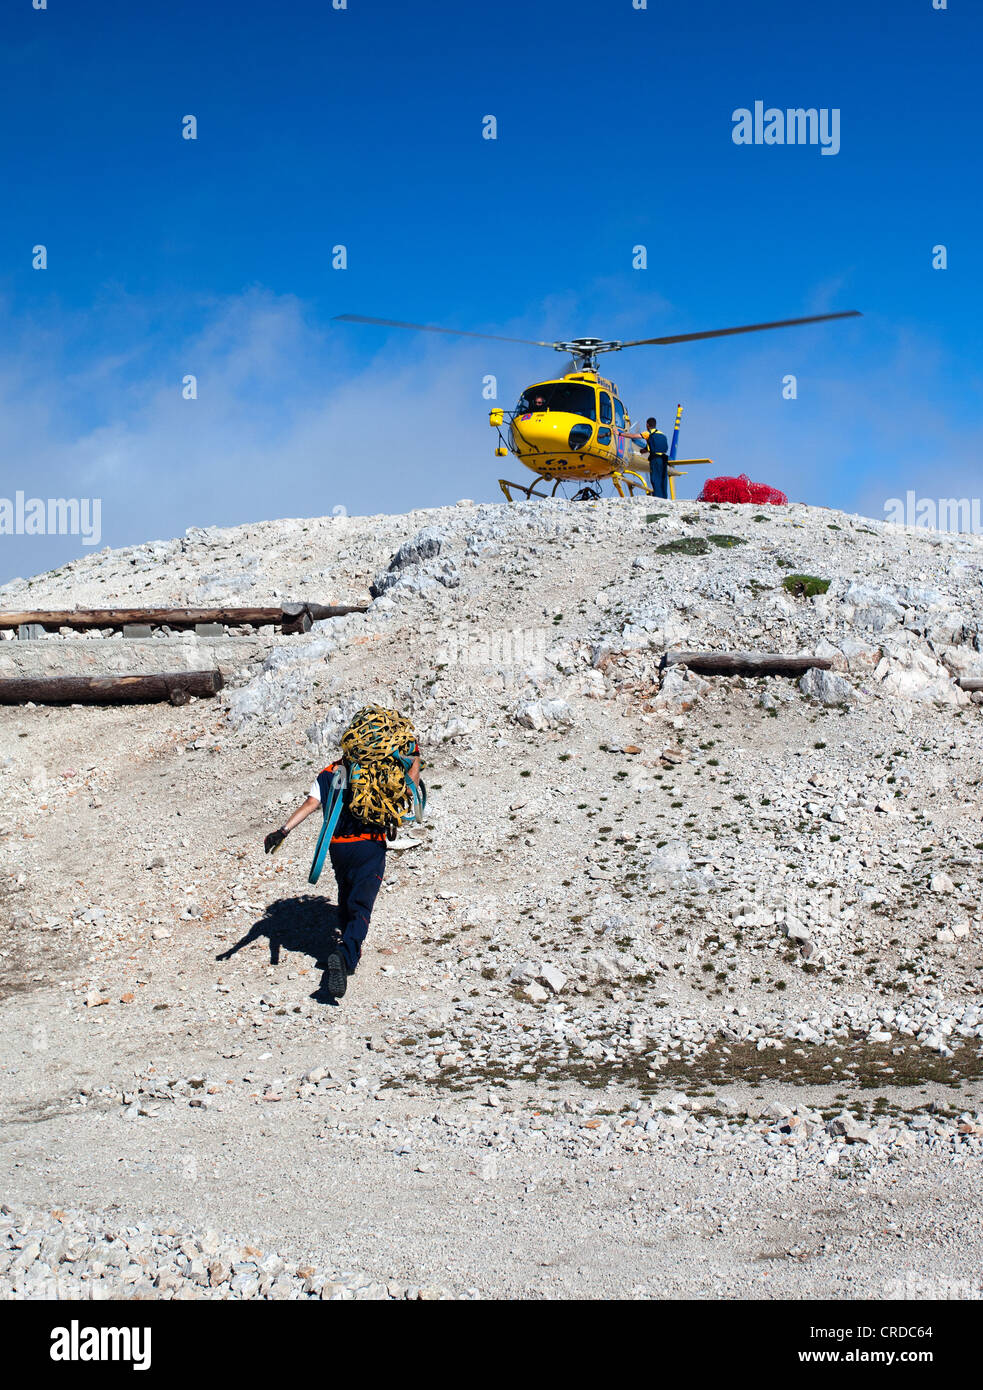 A helicopter drops off food and water supplies to Triglavski Dom mountain hut in the Julian Alps, Slovenia - Stock Image